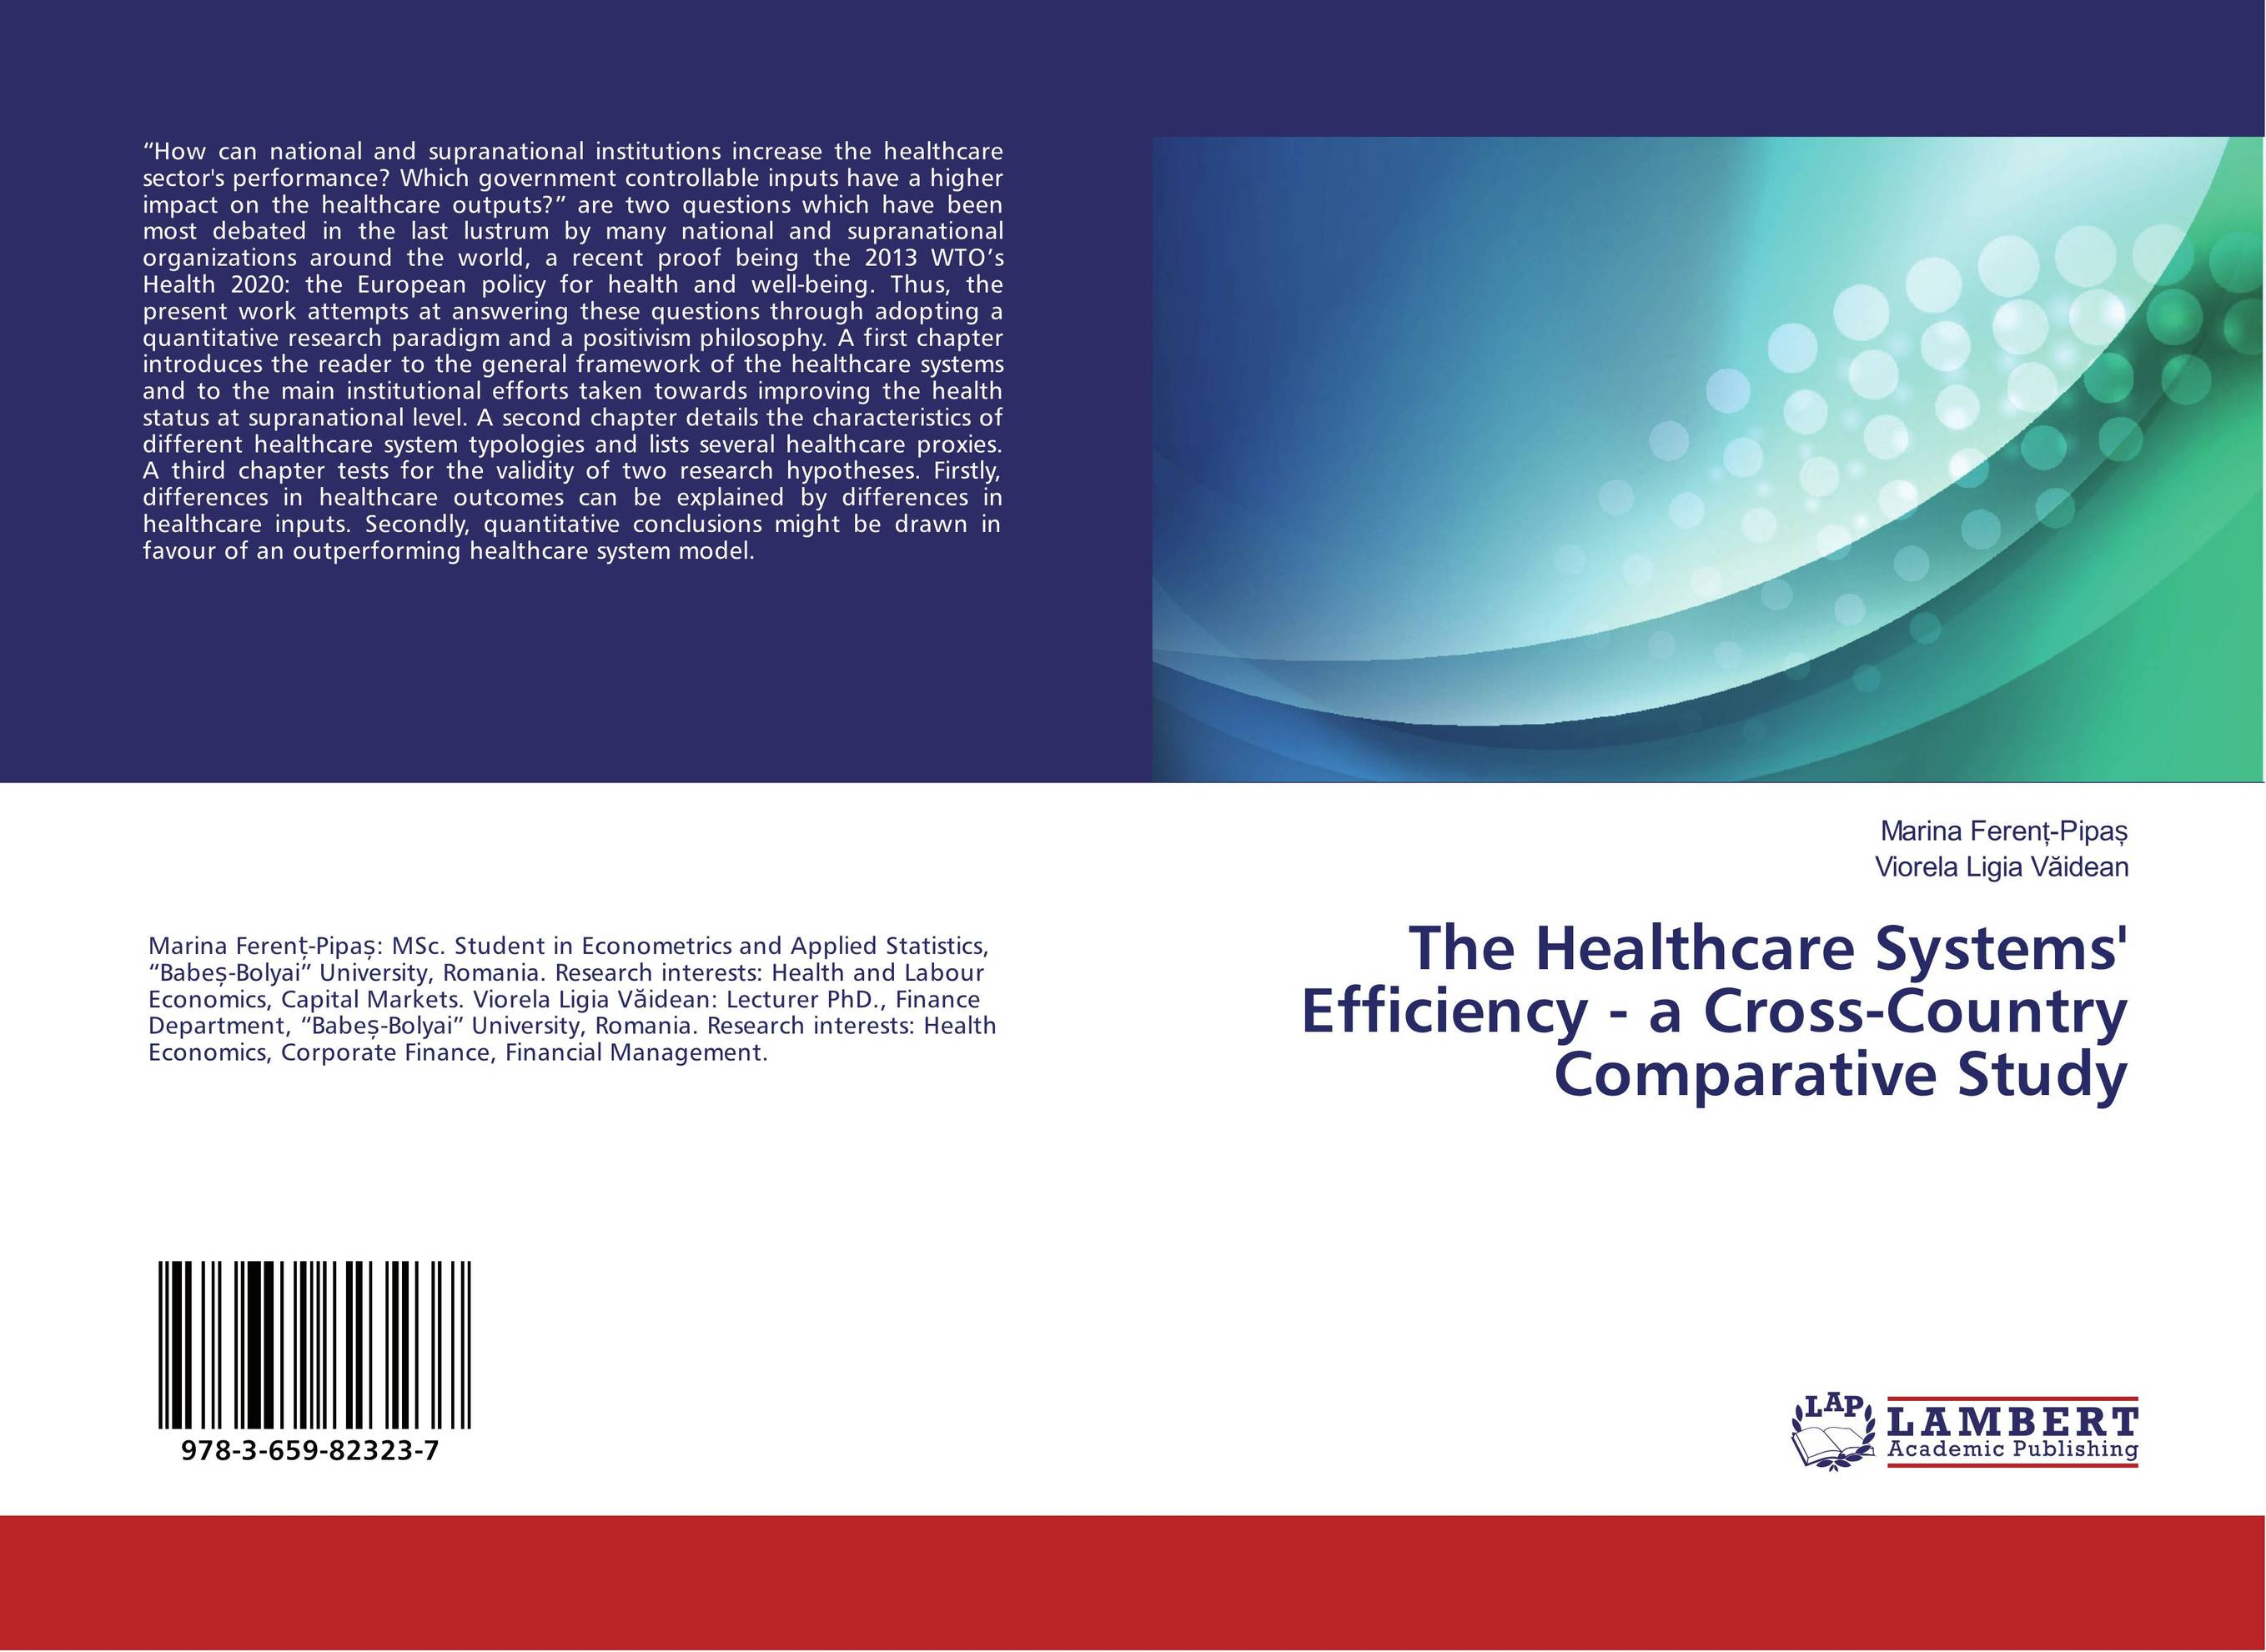 The Healthcare Systems' Efficiency - a Cross-Country Comparative Study healthcare gynecological multifunction treat for cervical erosion private health women laser device